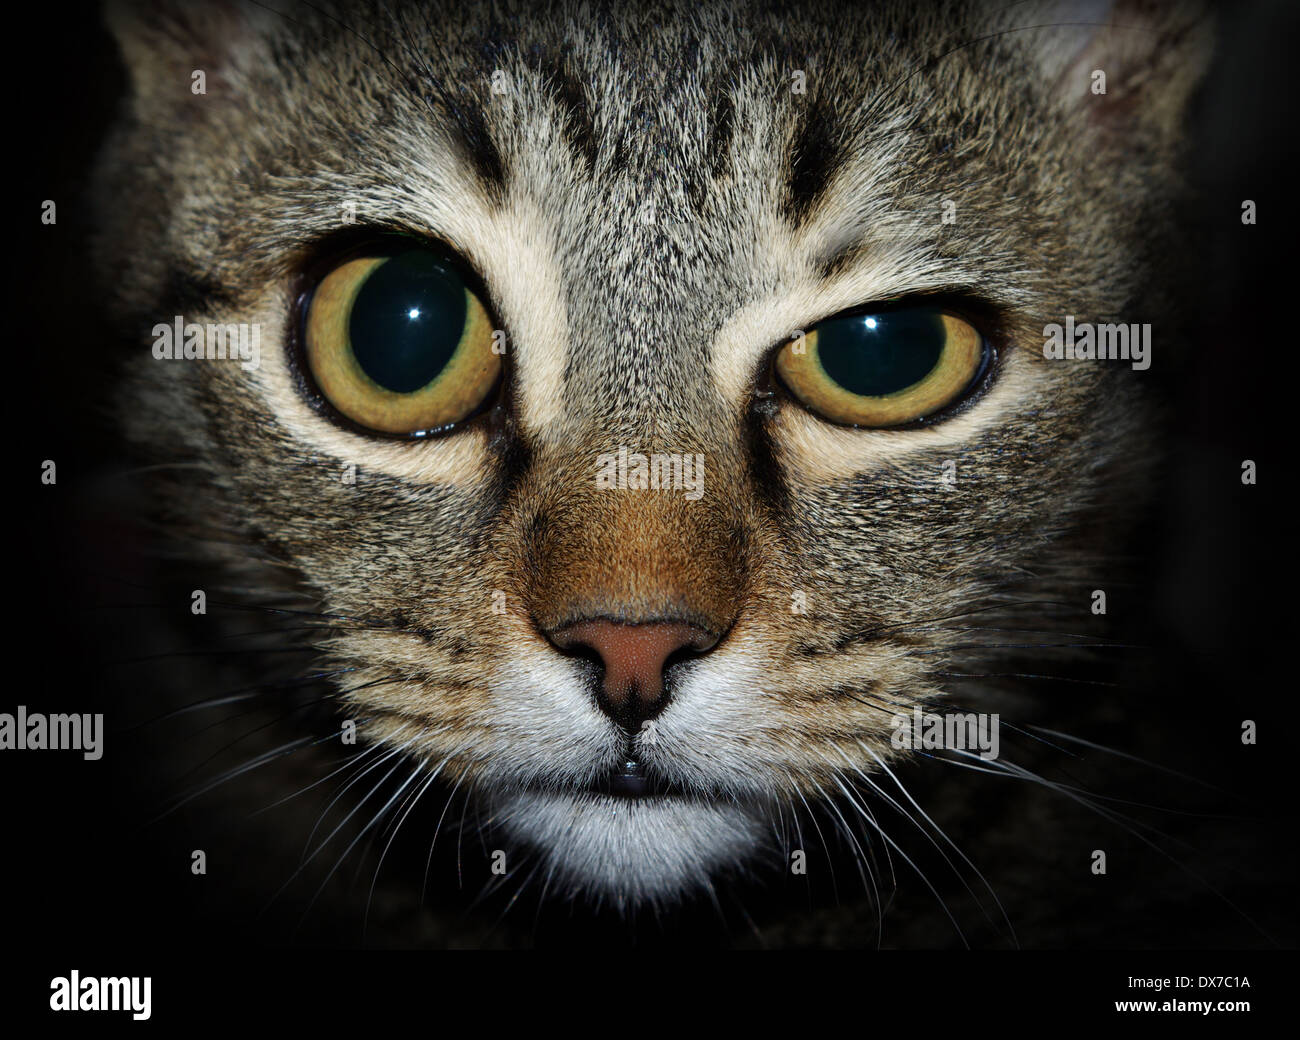 Crazy Cat looking at you Photo Stock